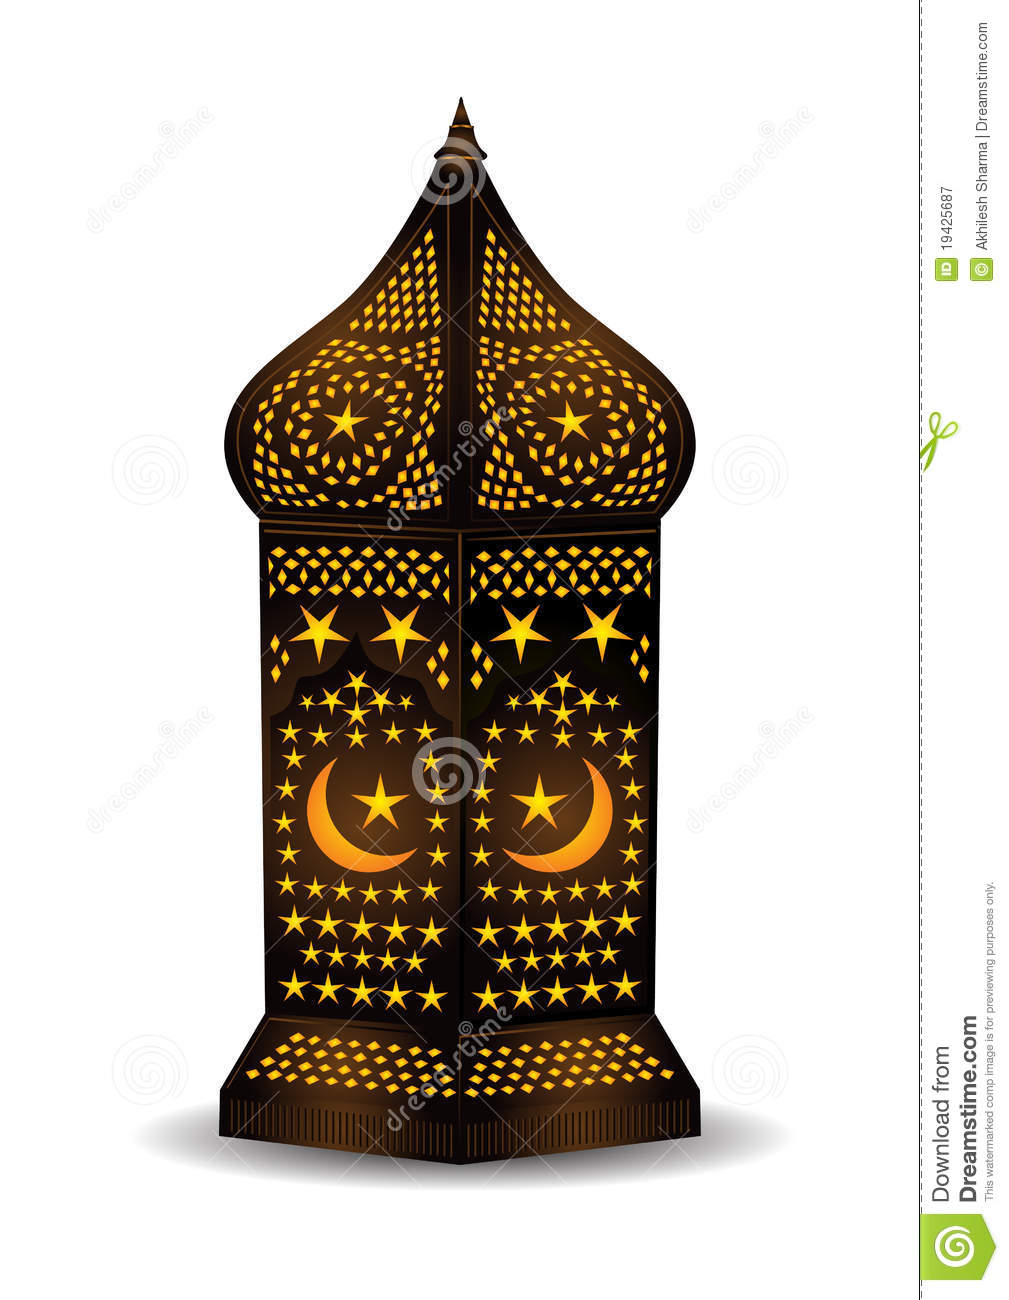 Arabic Lantern For Eid Or Ramadan Celebration Royalty Free Stock ...